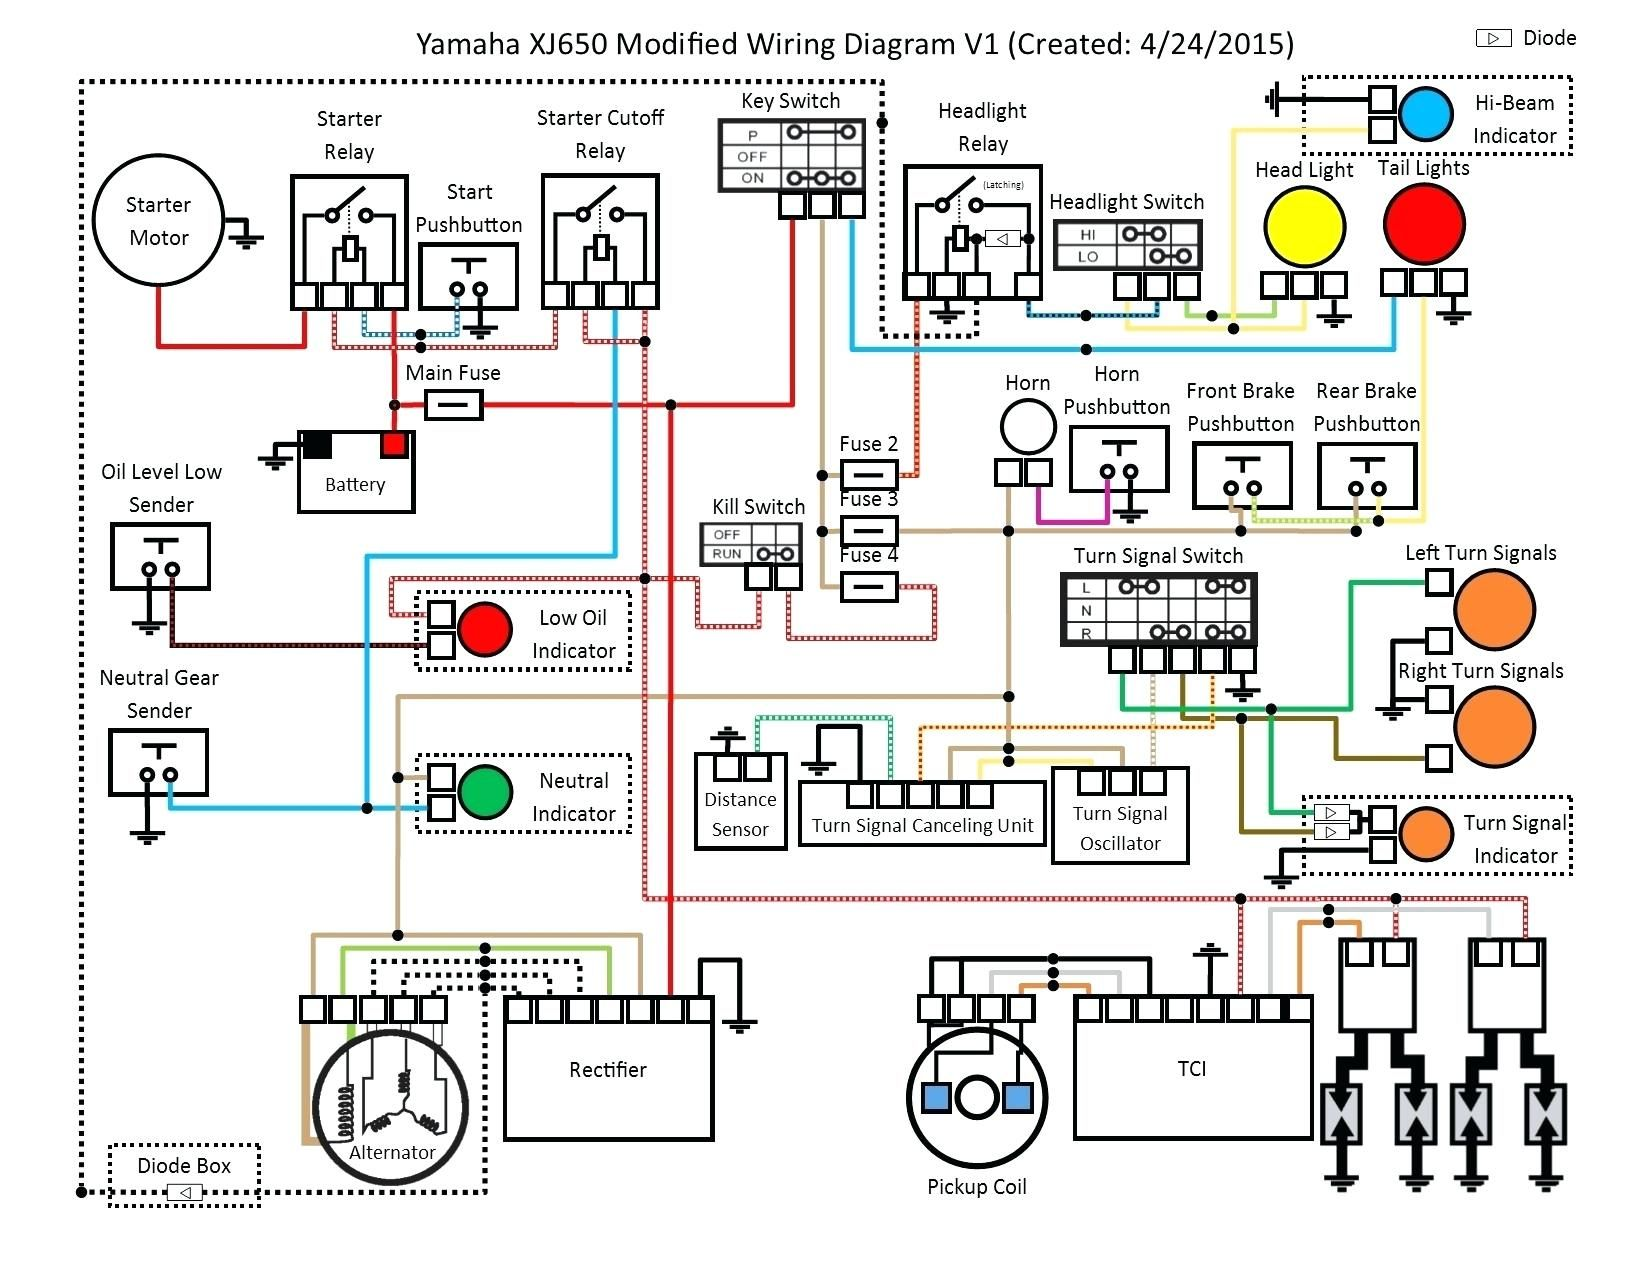 small resolution of xrm headlight wiring diagram wiring diagram blog xrm headlight wiring diagram source honda xrm motorcycle